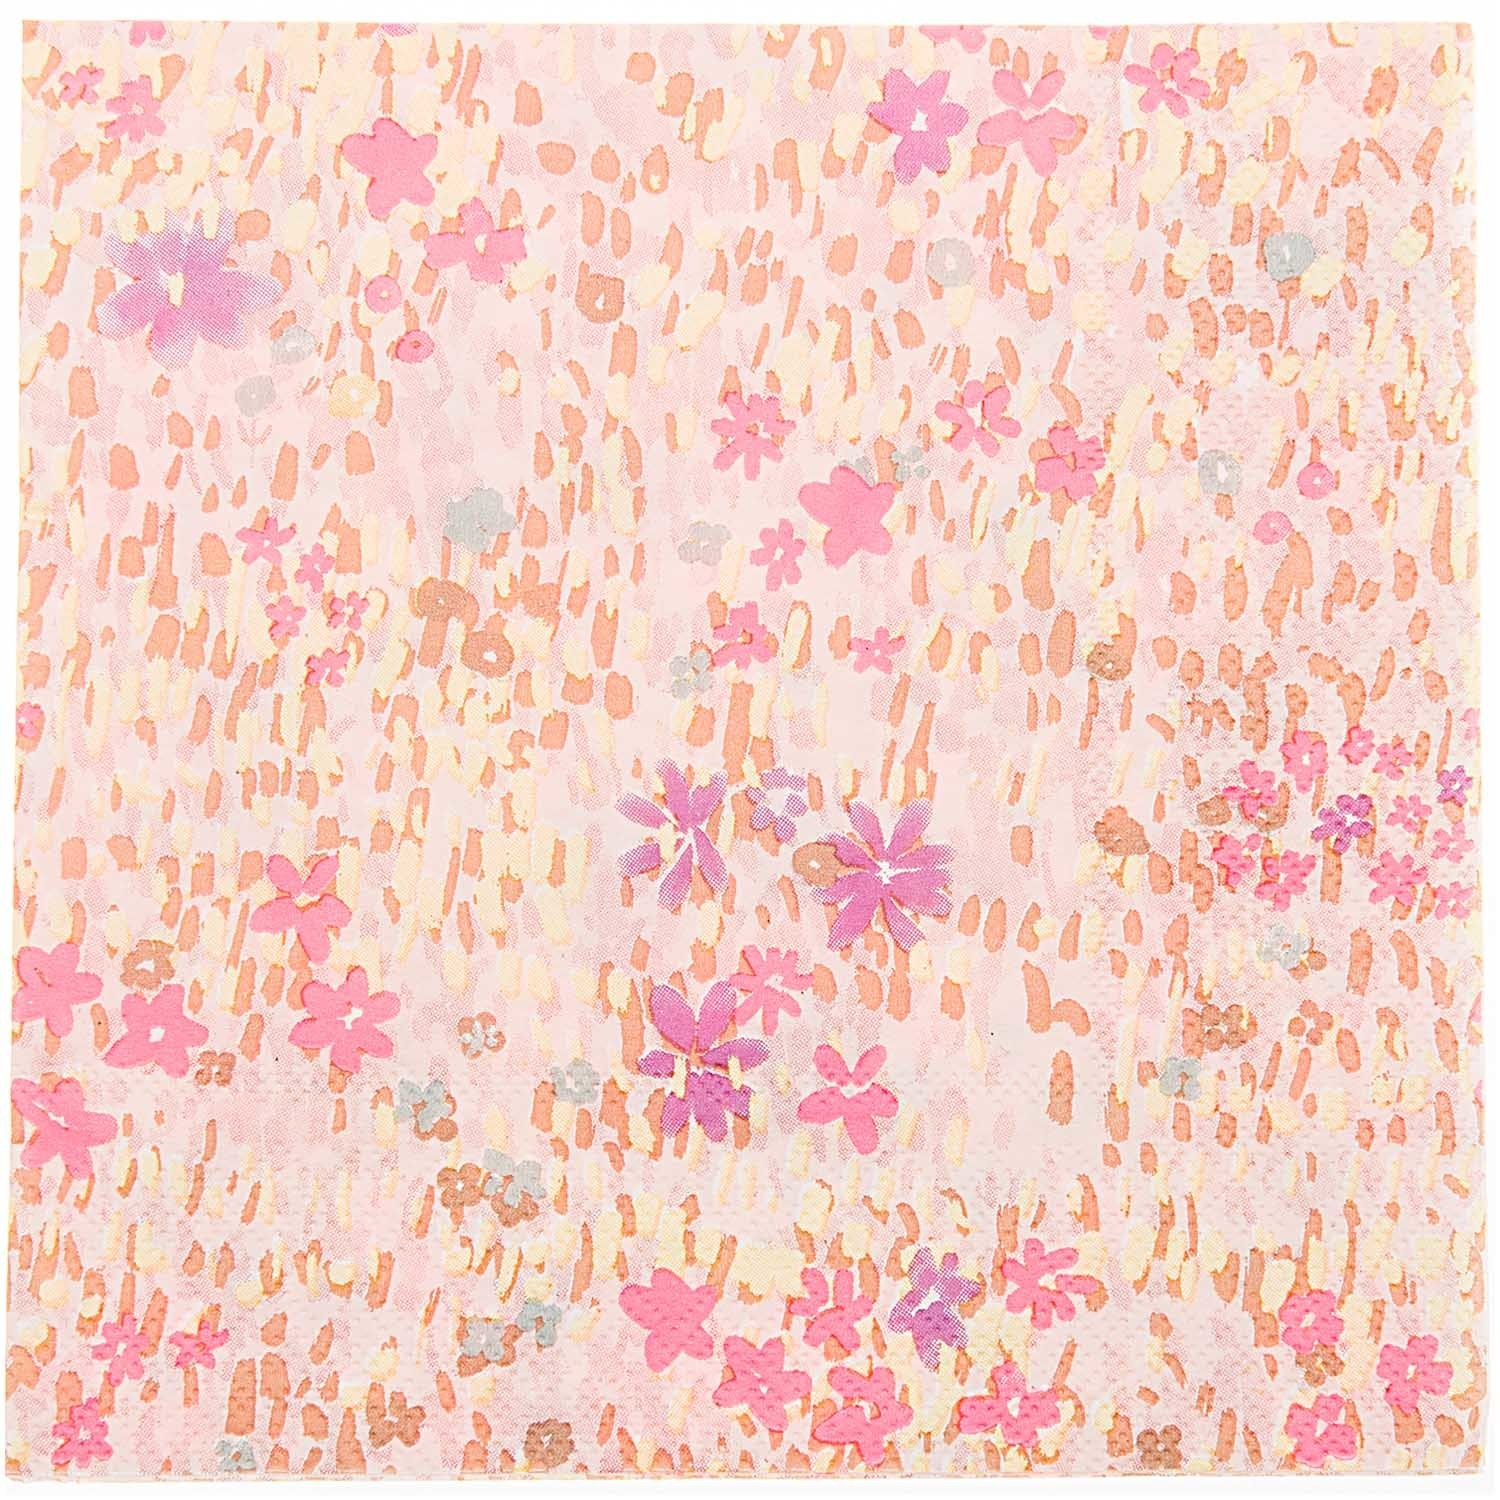 RICO NAPKIN, FLOWER MEADOW,PINK,FSC MIX